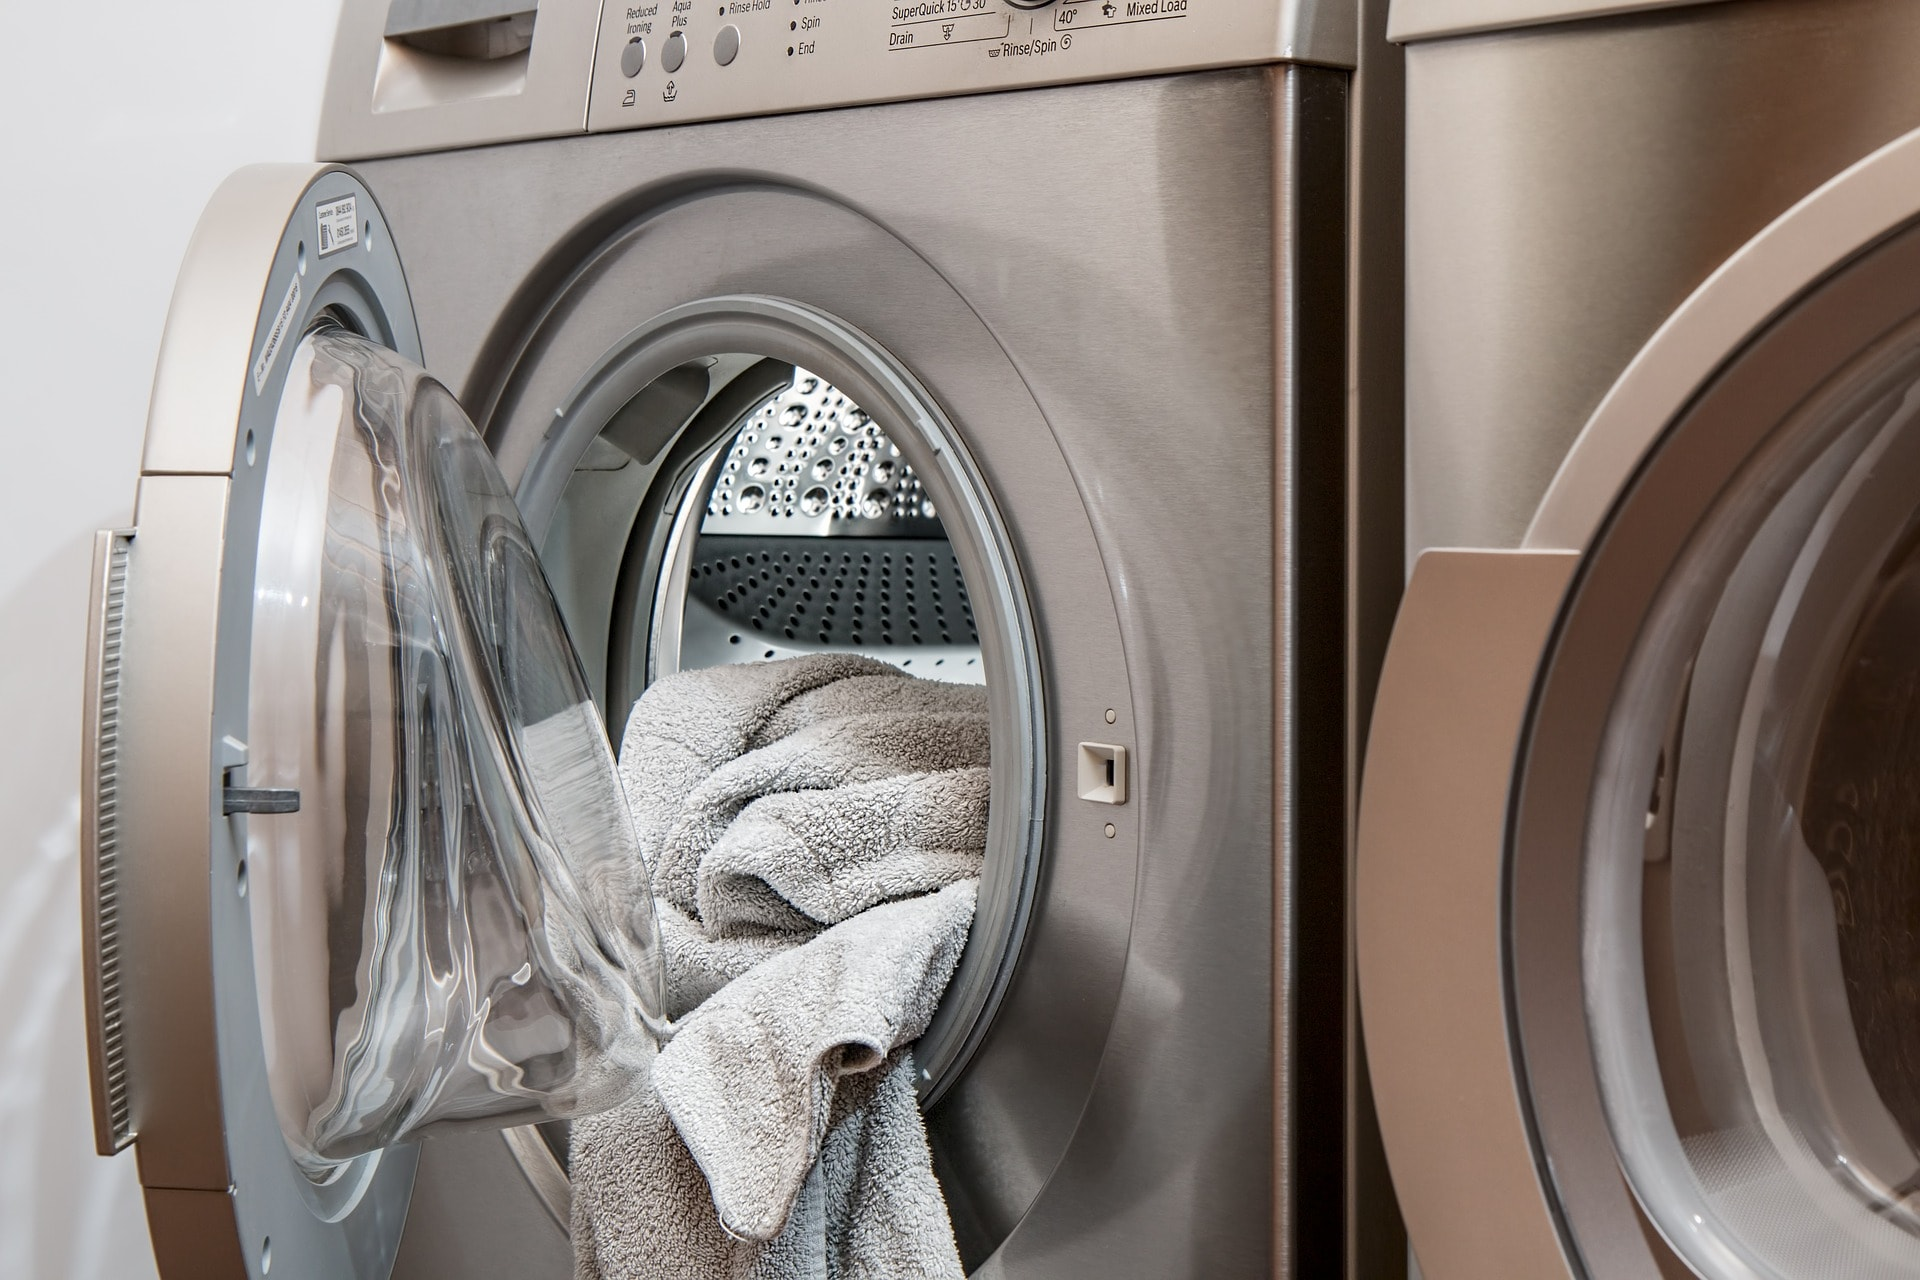 How to pick up water and energy efficient appliances - washing machine